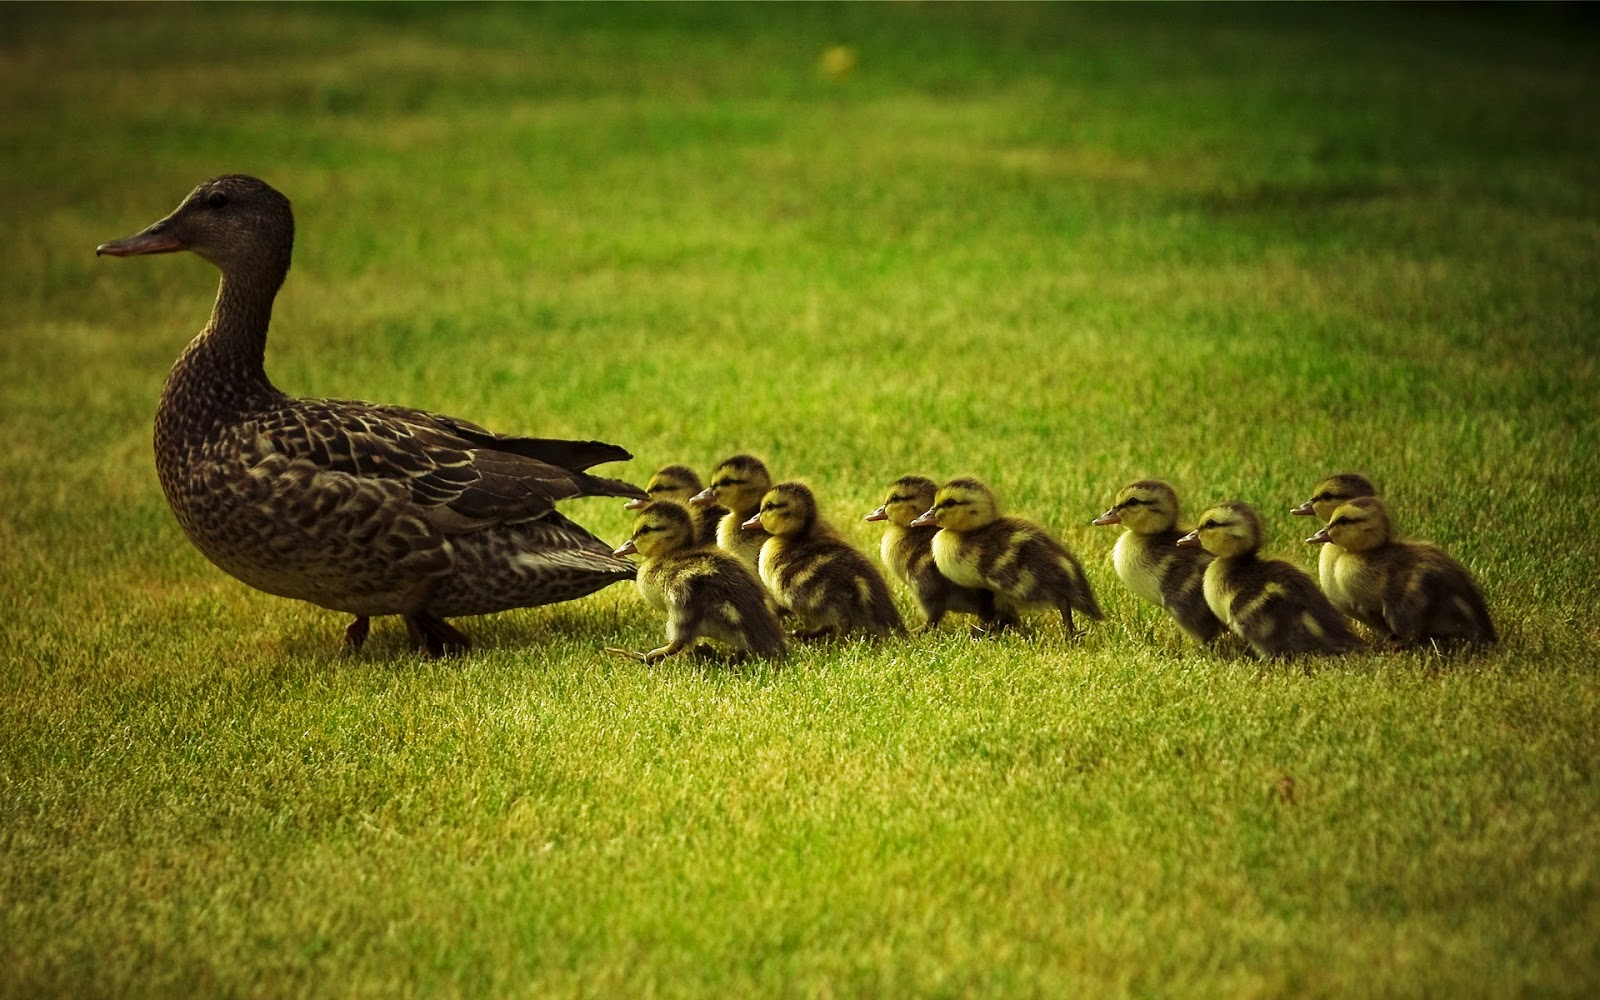 http://2.bp.blogspot.com/-p0K65Z3AU-A/TrAfqVqVNwI/AAAAAAAAEJo/H0kfaXZwLyE/s1600/Mother_Duck_And_Little_Ducks_Wallpaper%252BVvallpaper.Net.jpg